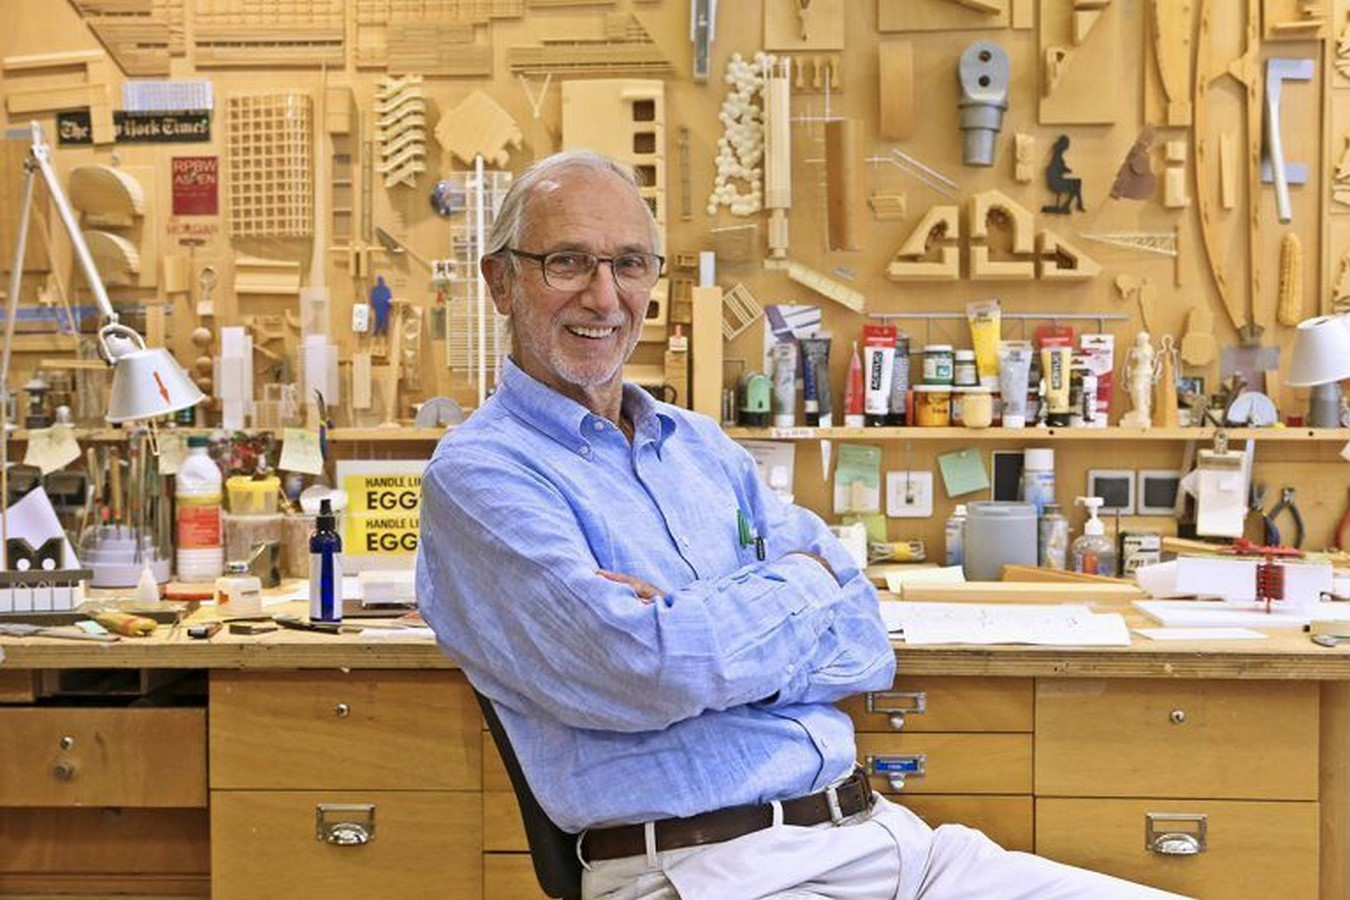 An Inside look at the Studios of Renzo Piano Sheet1